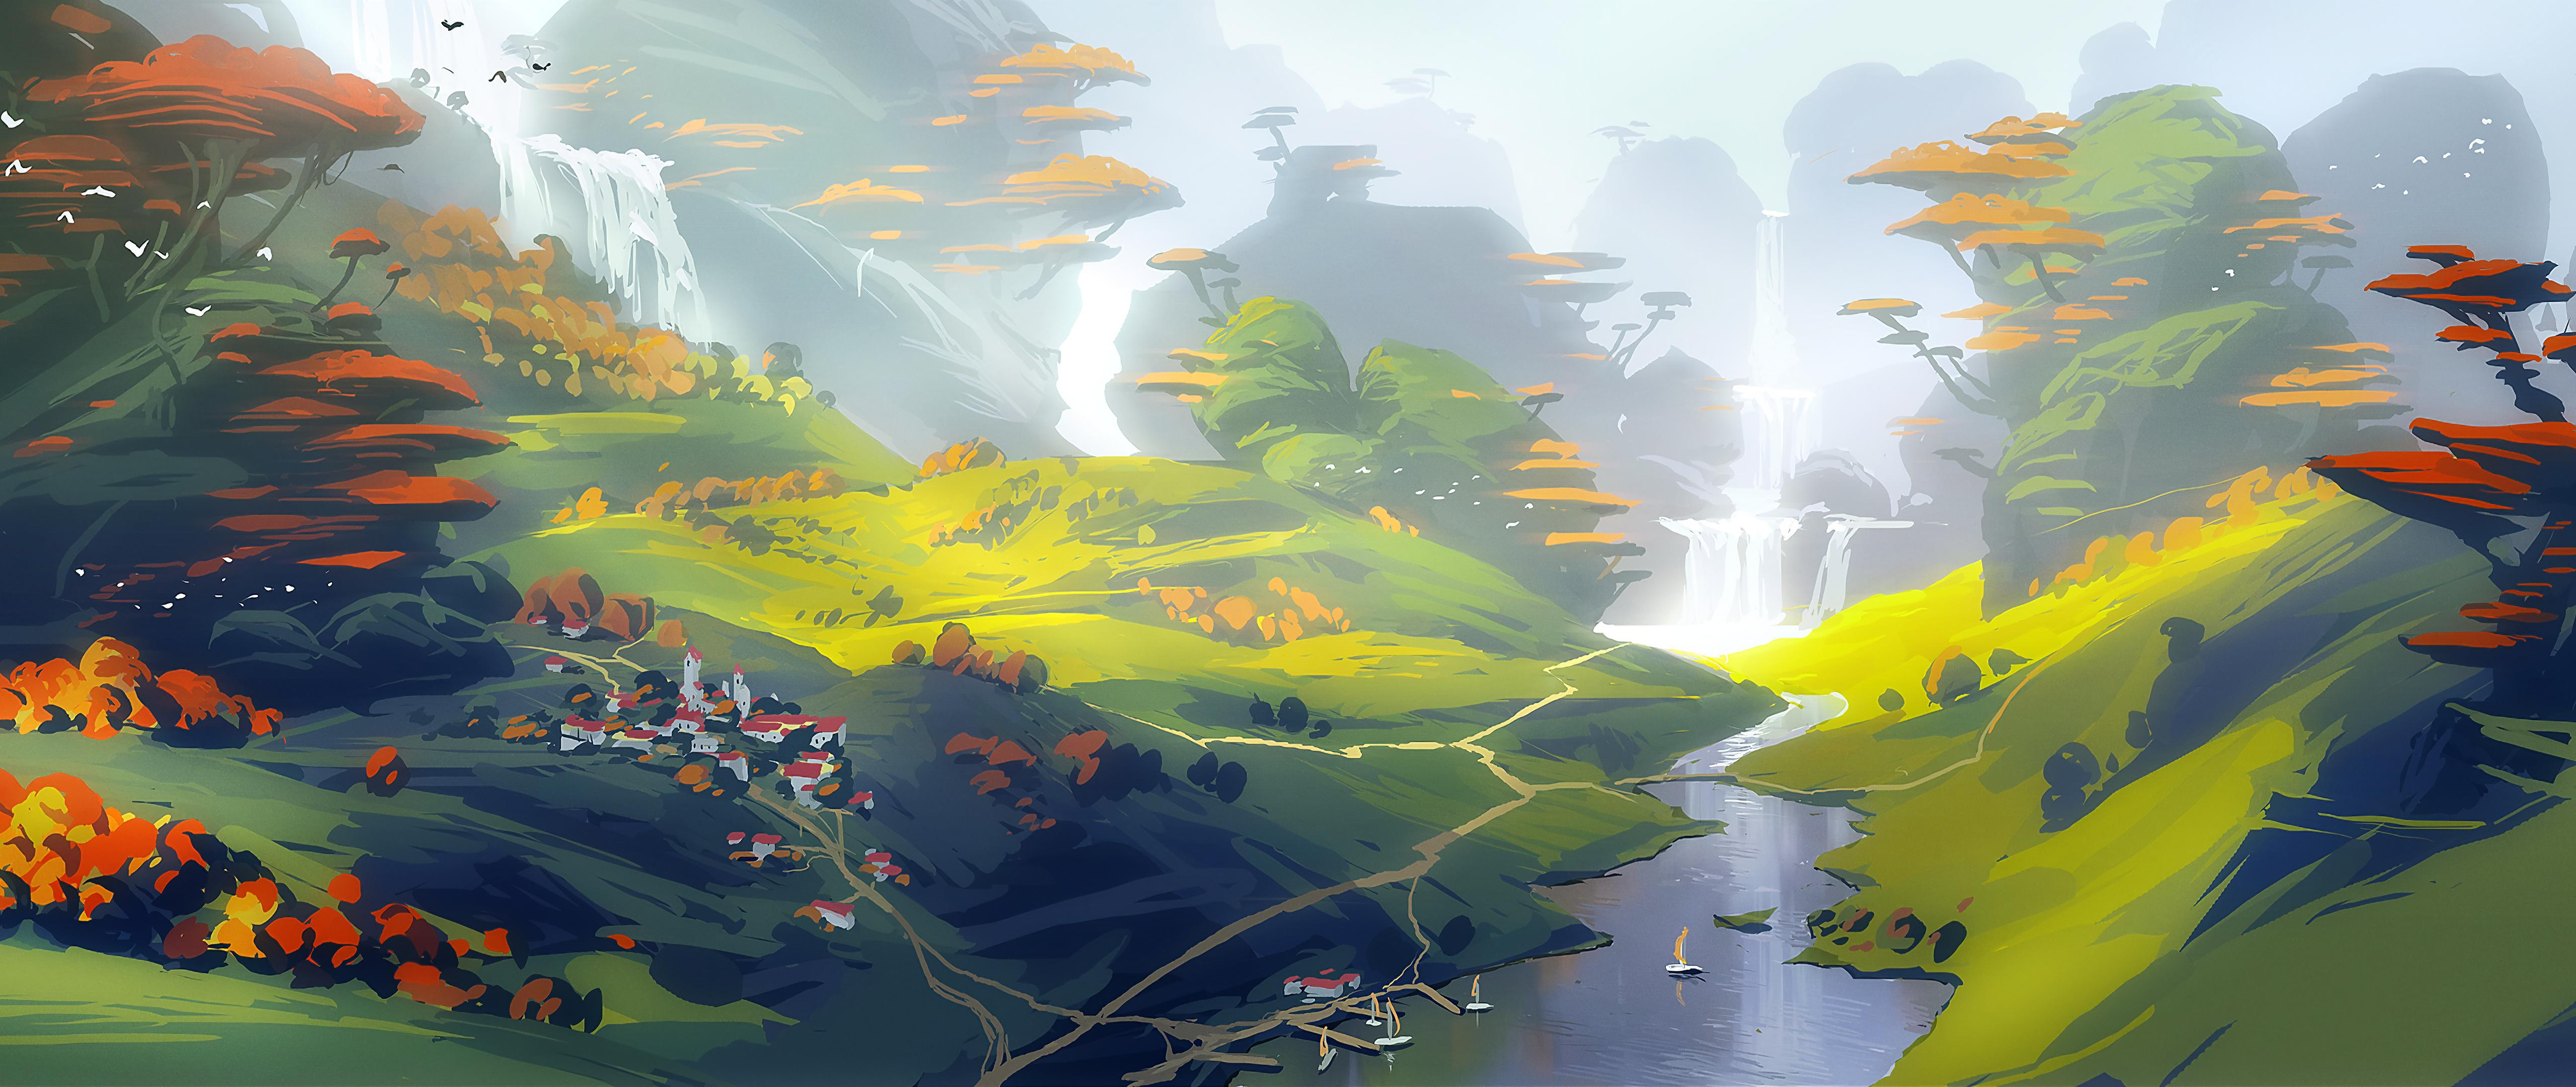 General 5120x2160 digital digital art artwork illustration drawing digital painting environment nature seasons fall landscape trees water sea waterfall mountains mist village villages town boat painting concept art outdoors